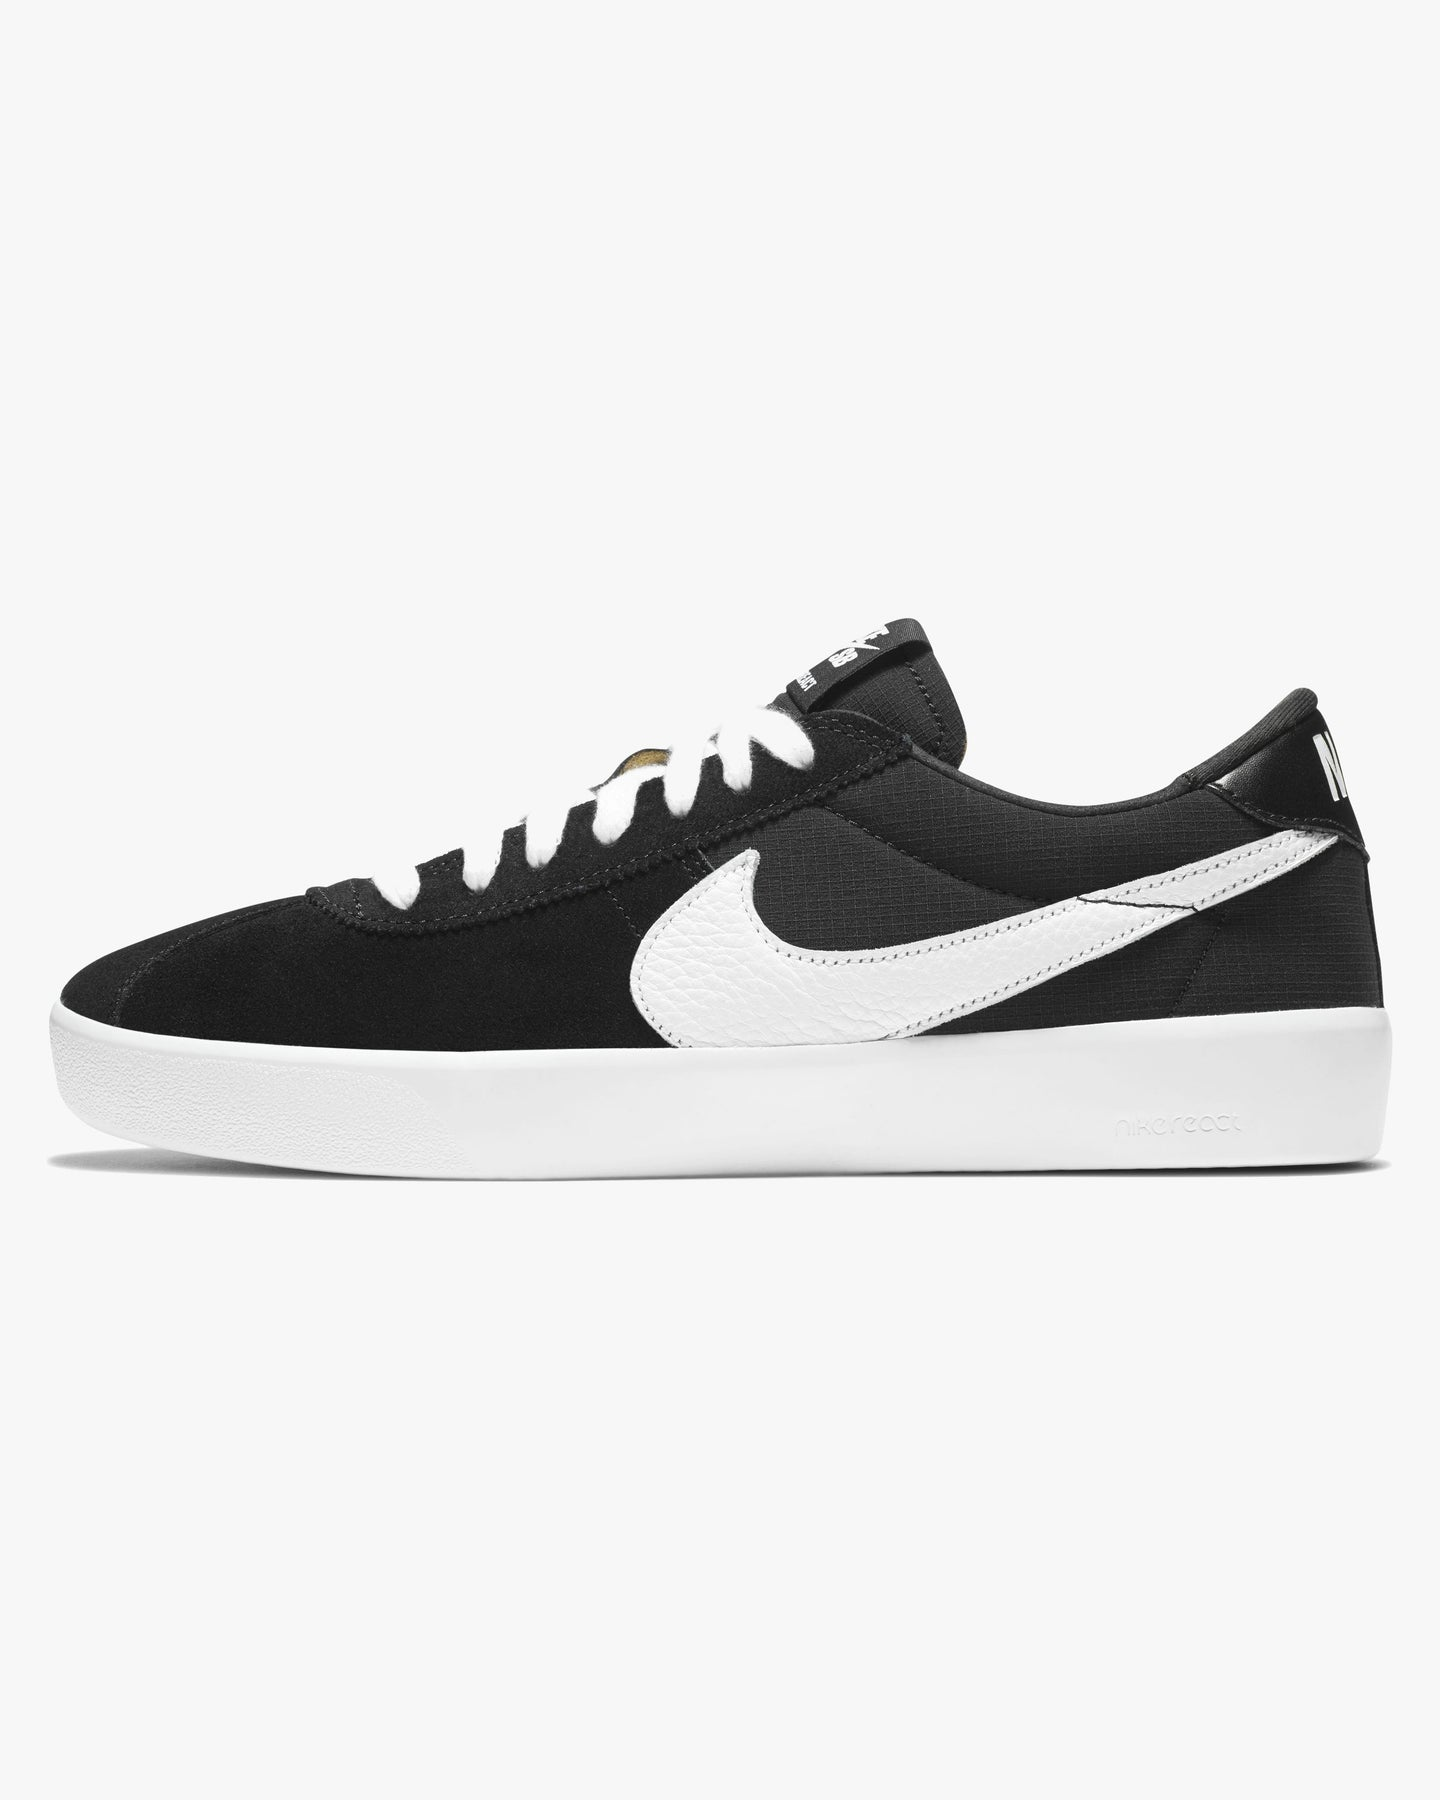 Nike SB Bruin React - Black / White UK 7 CJ16610017 194276352649 Nike SB Trainers